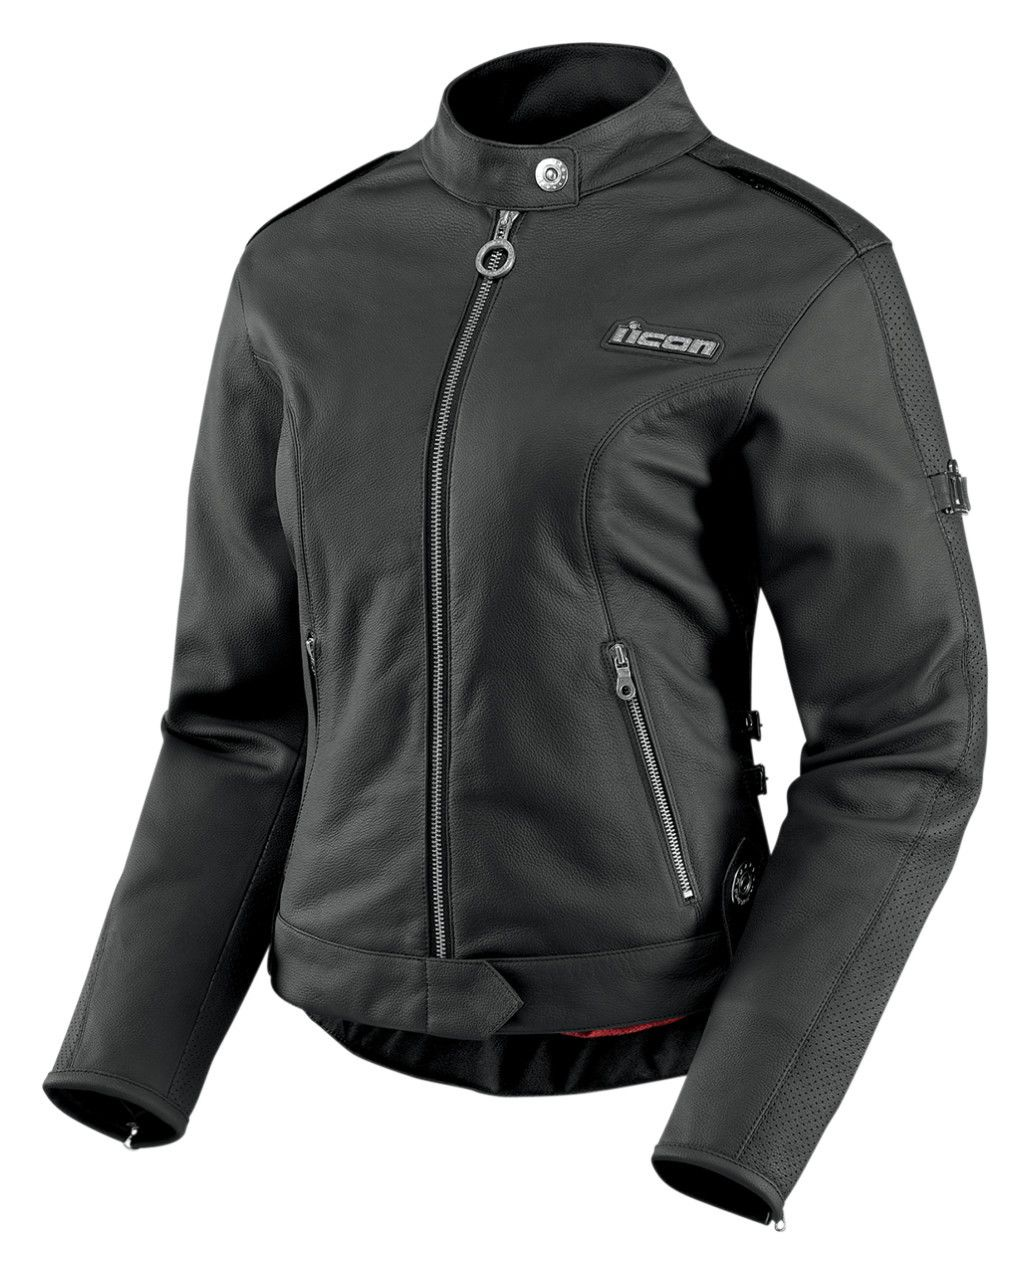 Find great deals on eBay for icon jacket. Shop with confidence.